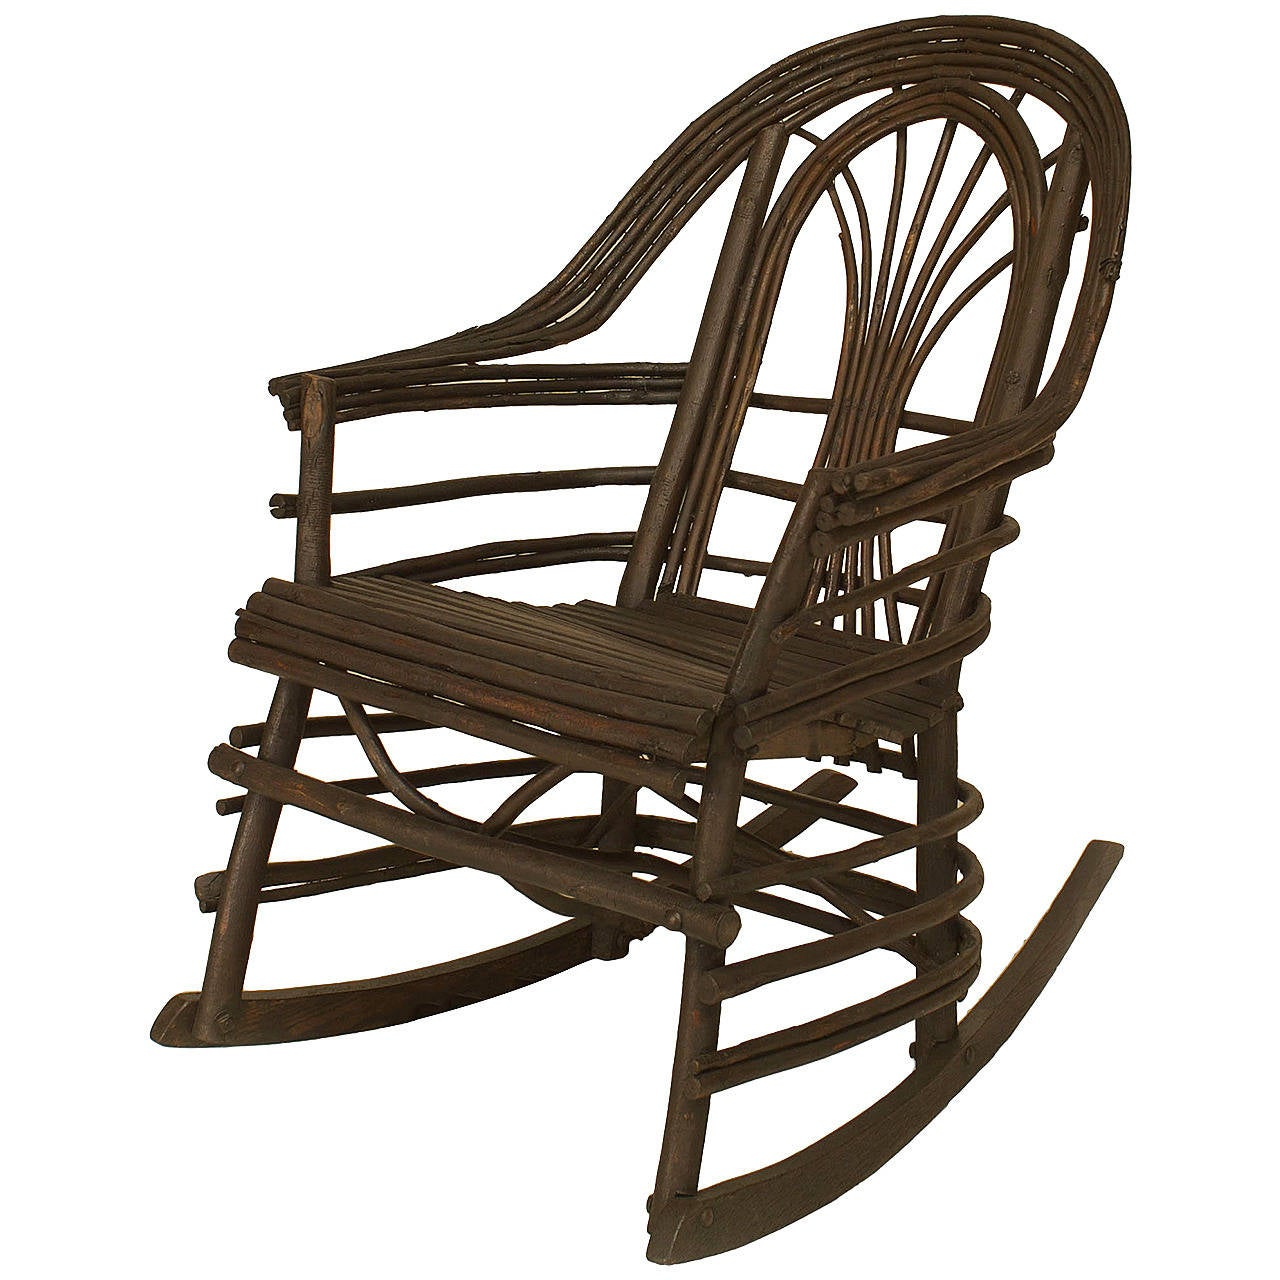 20th c. American Adirondack Style Willow Twig Rocking Chair at 1stdibs